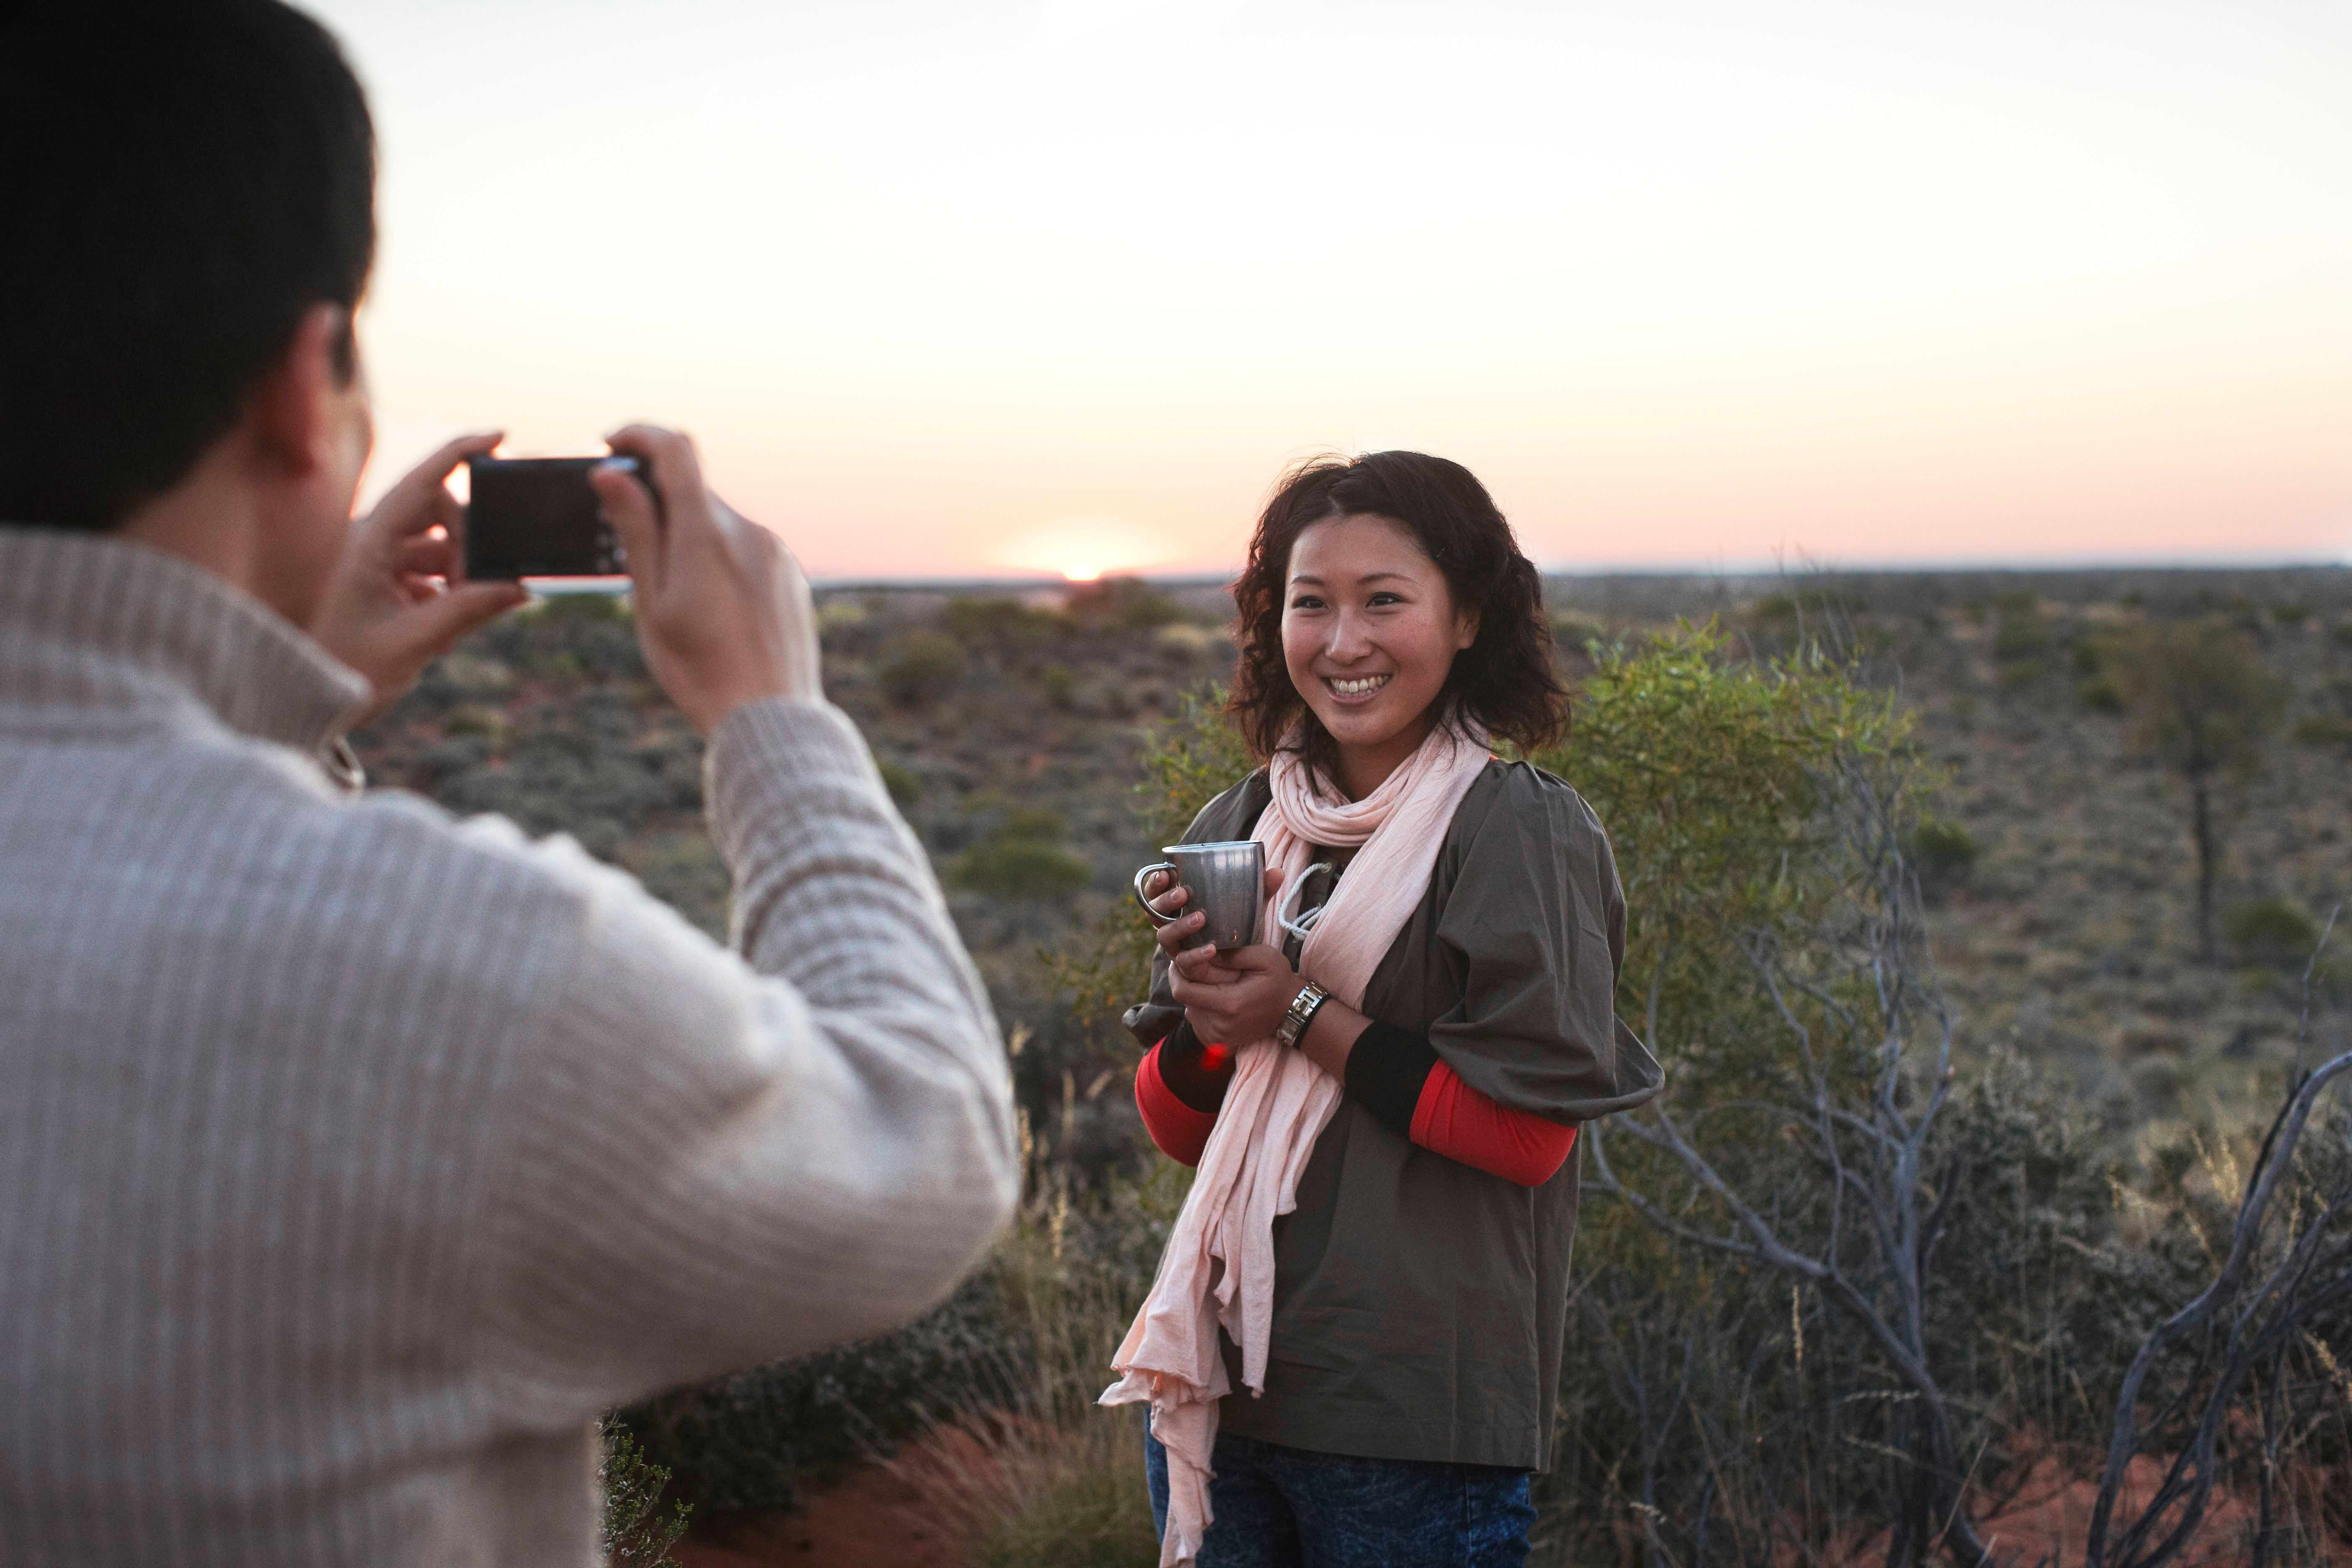 Couple taking photo in outback